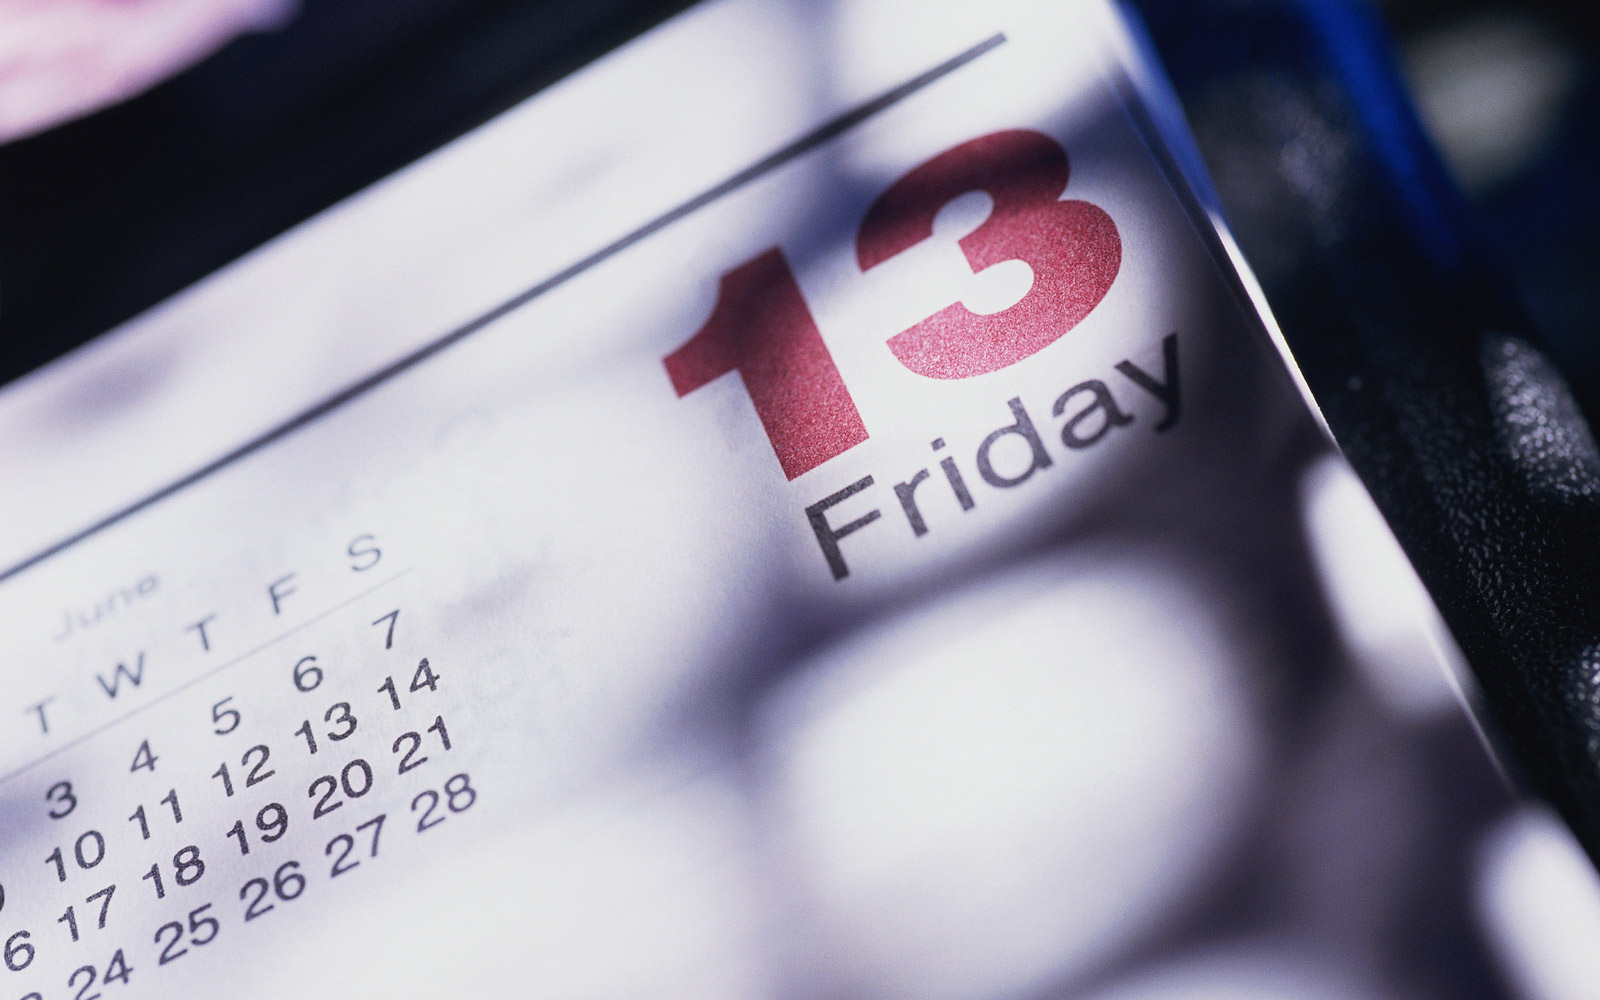 Why Is Friday the 13th Unlucky?